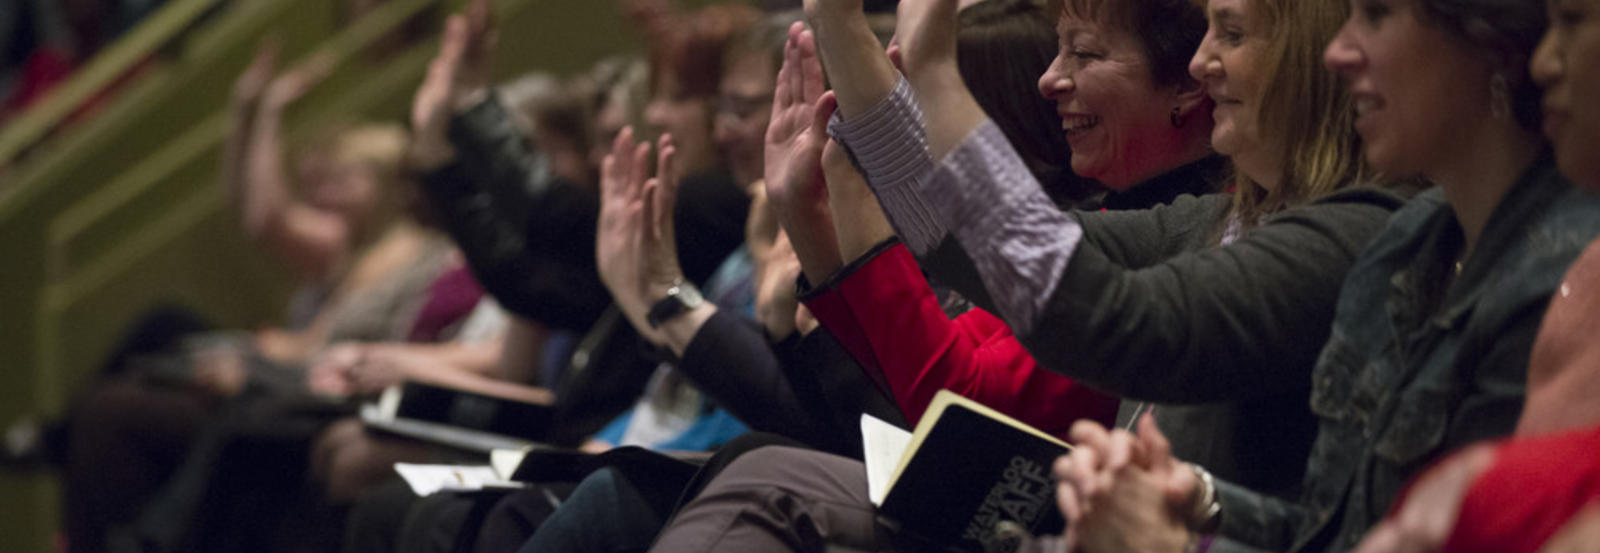 Staff members raise their hands at a conference